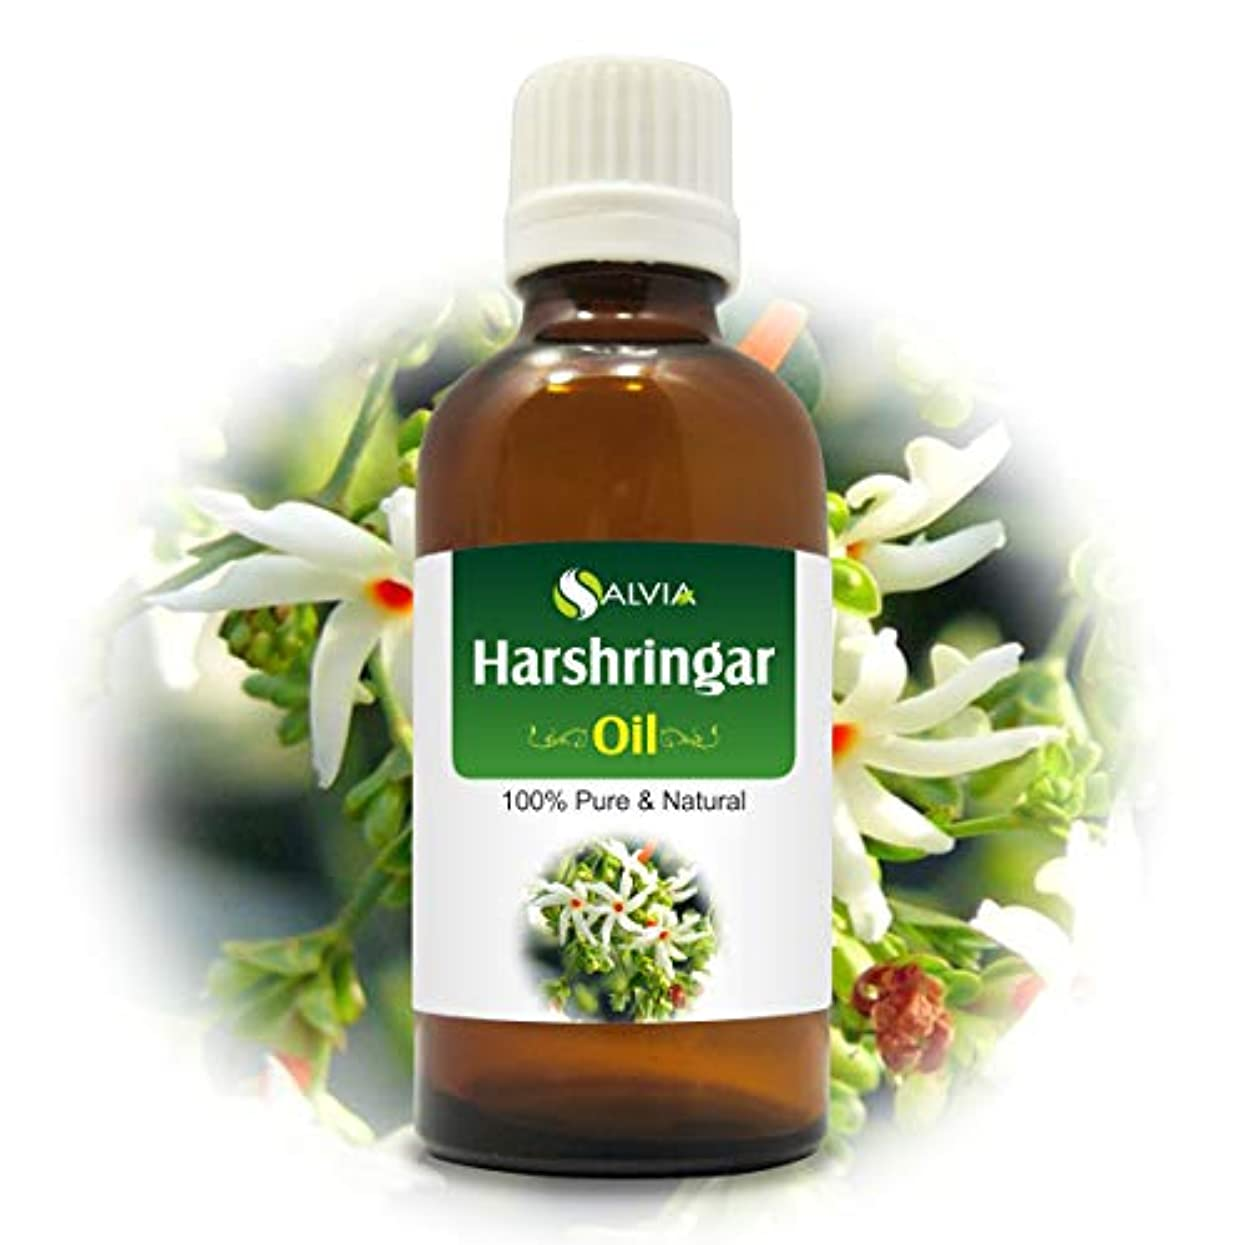 高価な哀れな納税者Harshringar Oil (Nyctanthes arbor-tristis) 100% Natural Pure Undiluted Uncut Essential Oil 30ml